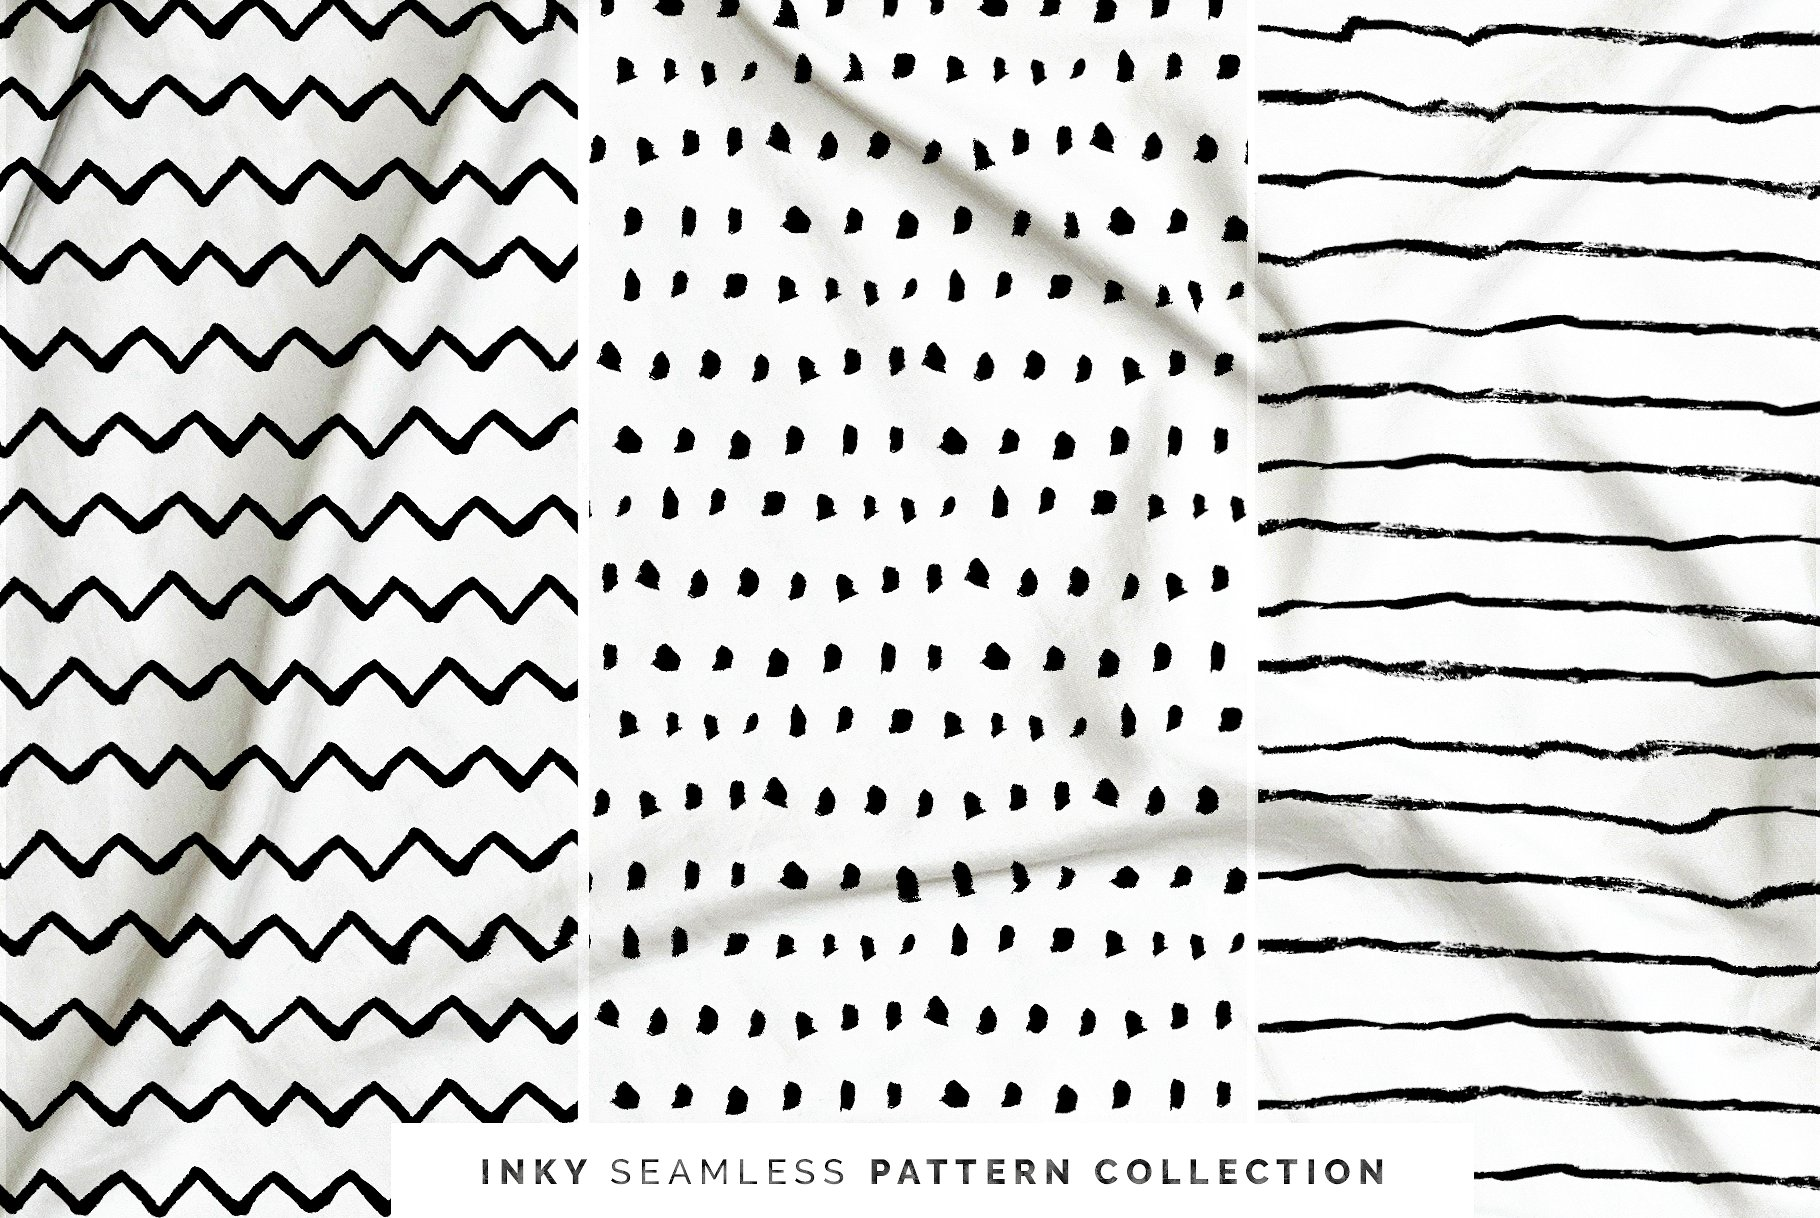 Inky Seamless Vector Patterns Vol. 2